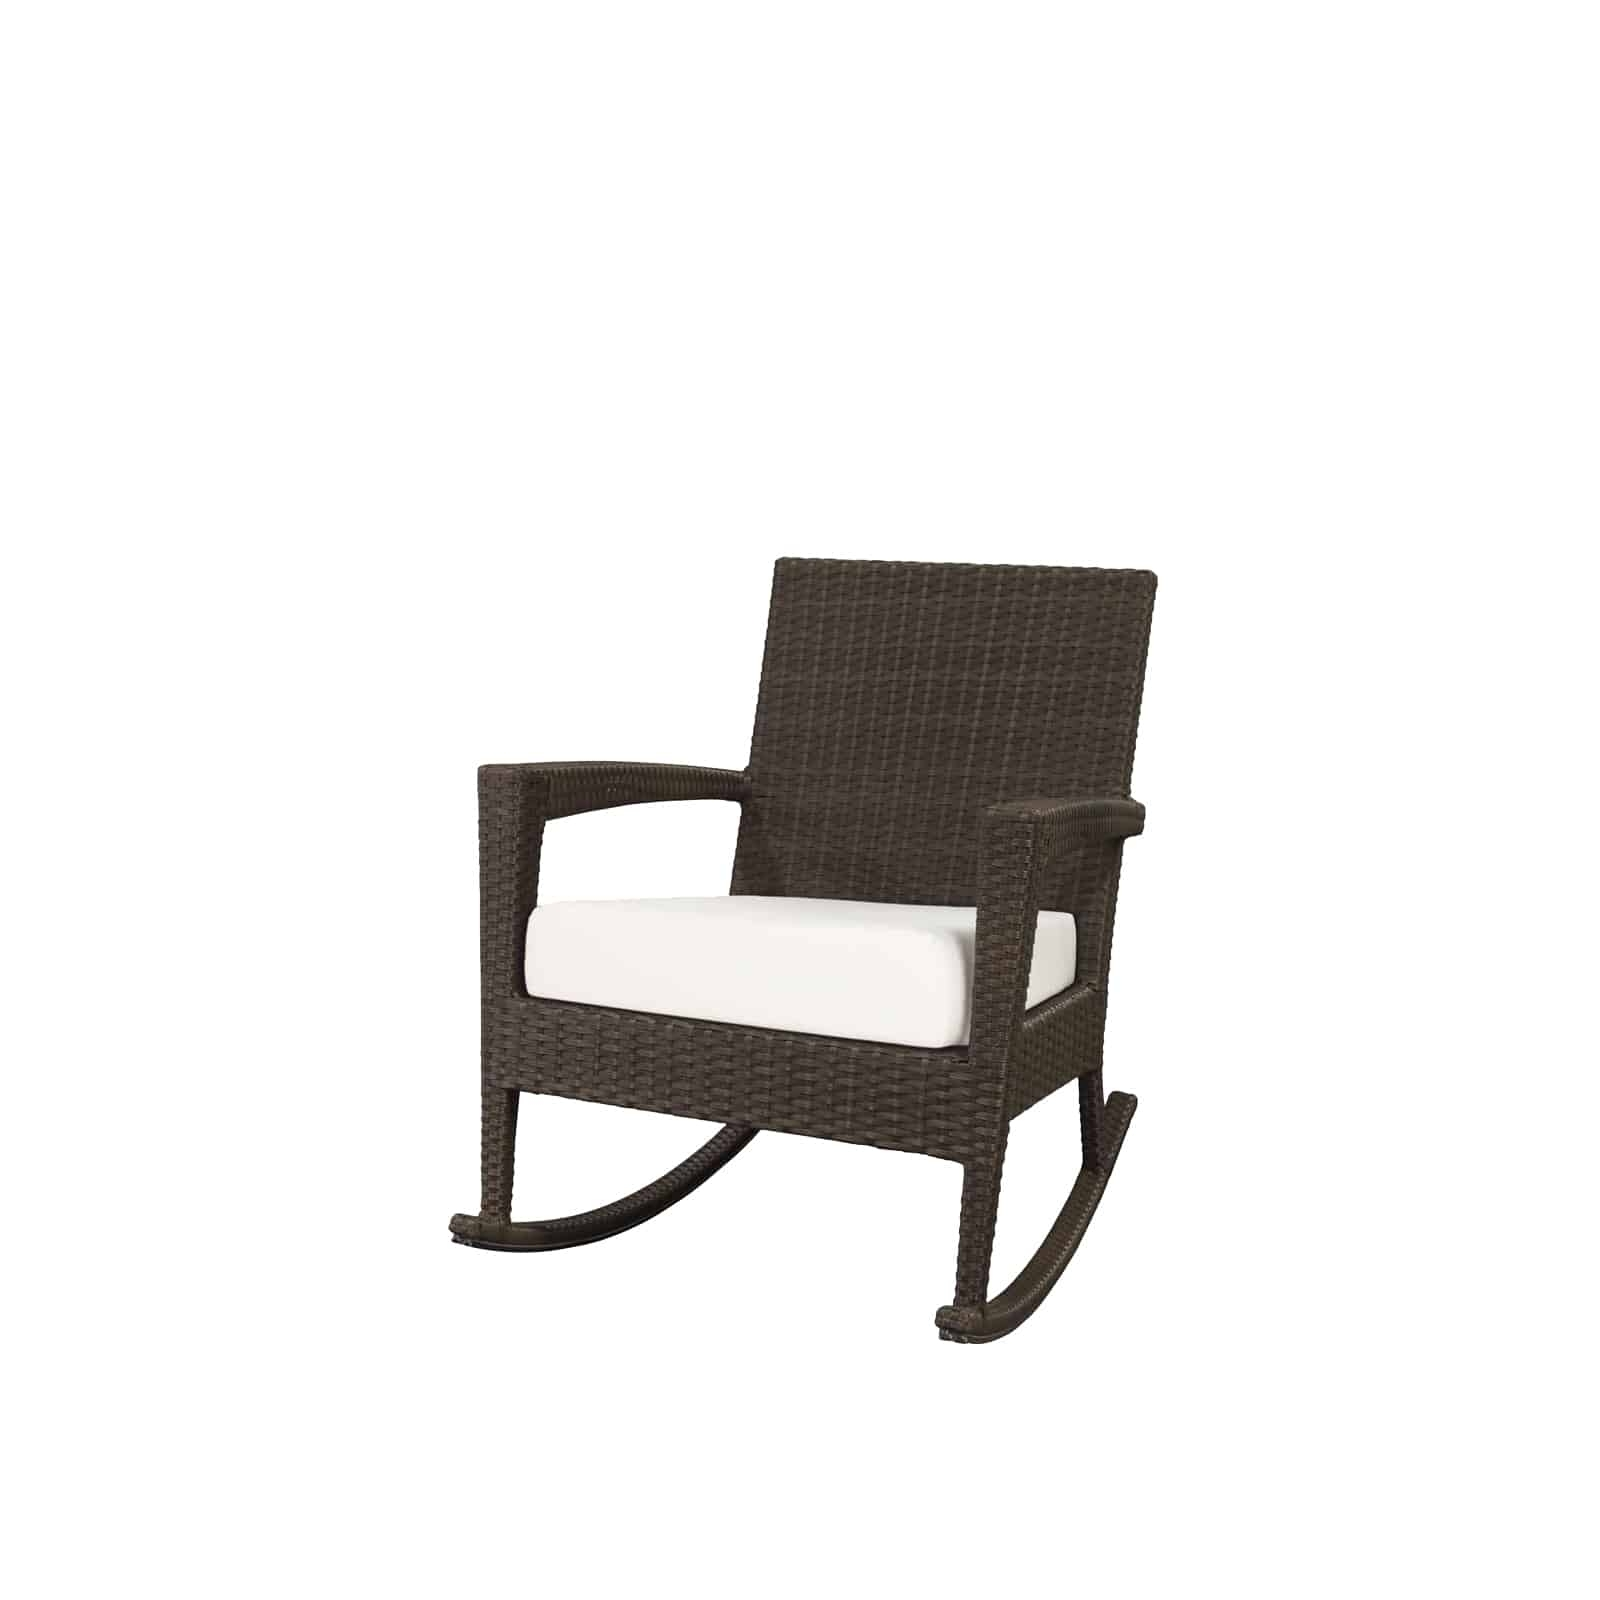 Inspiration about Zen Rocking Chair | Source Furniture | Commercial Furniture Intended For Zen Rocking Chairs (#3 of 15)